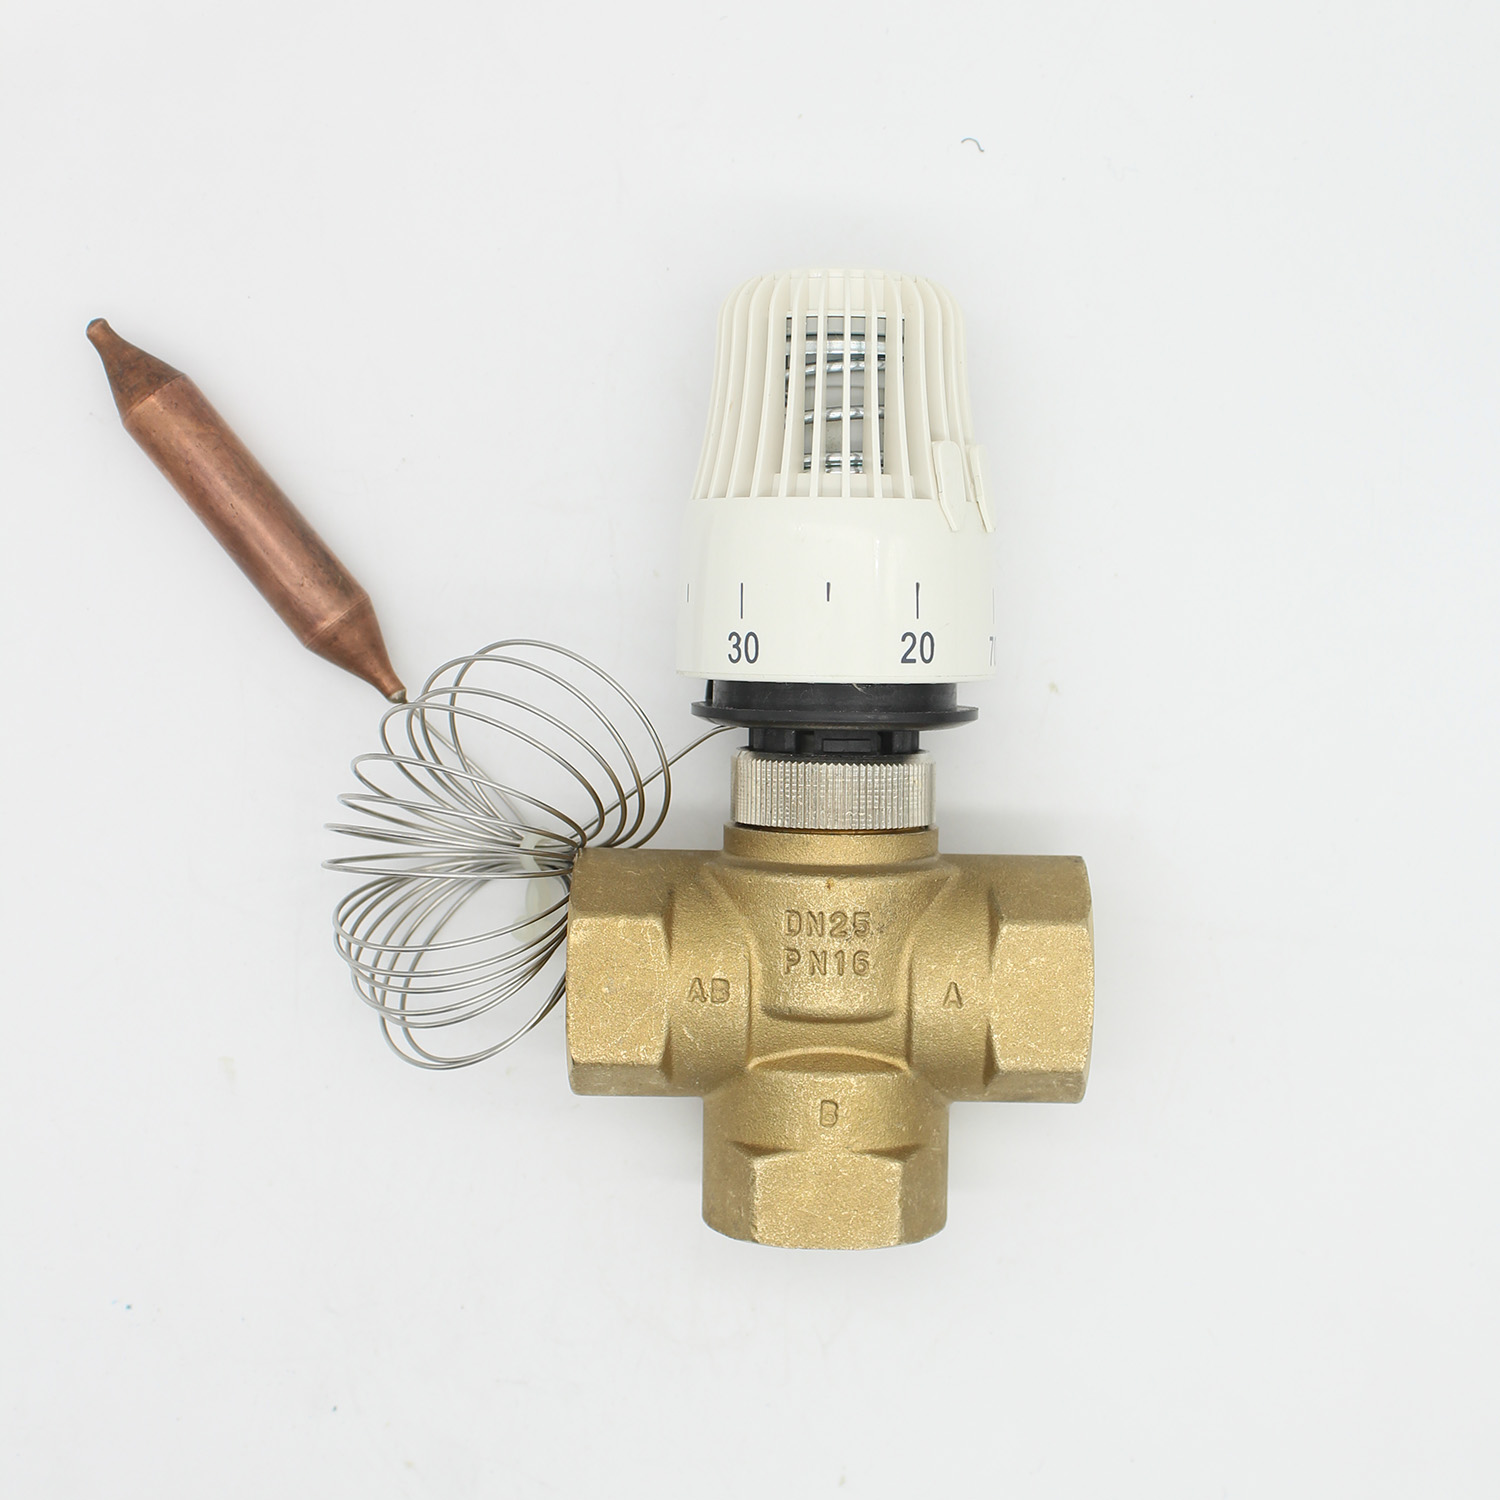 Energy saving 30 70 degree control Floor heating system thermostatic radiator valve M30*1.5 Remote controller 3 way brass valve-in Valve from Home Improvement    2